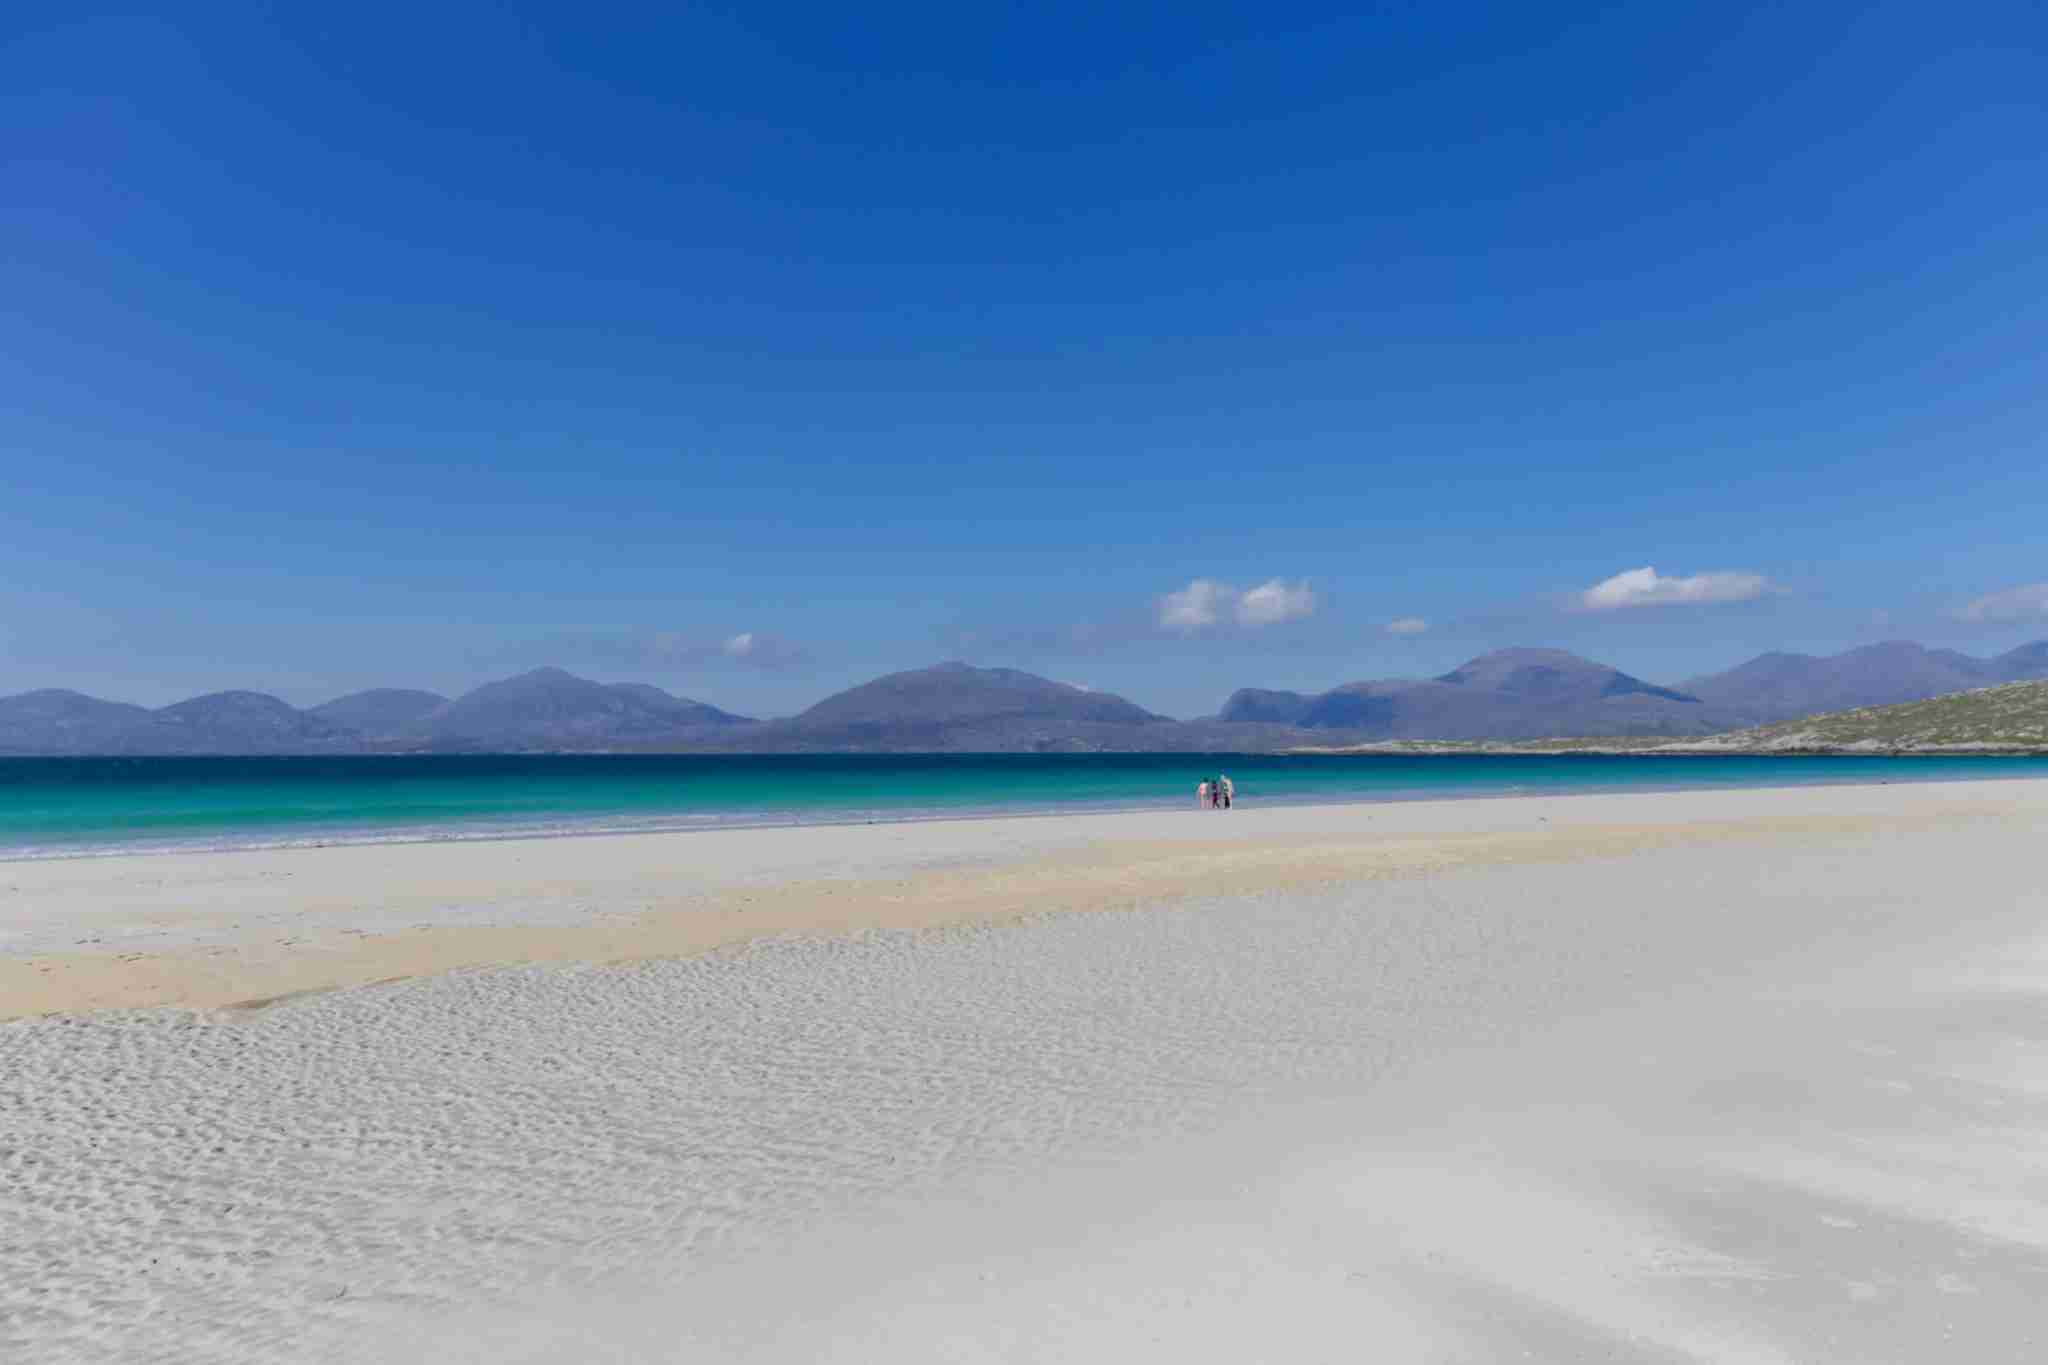 Luskentyre Beach on the Isle of Harris, Outer Hebrides, Scotland, UK (Photo by PetraKosonen/Getty Images)